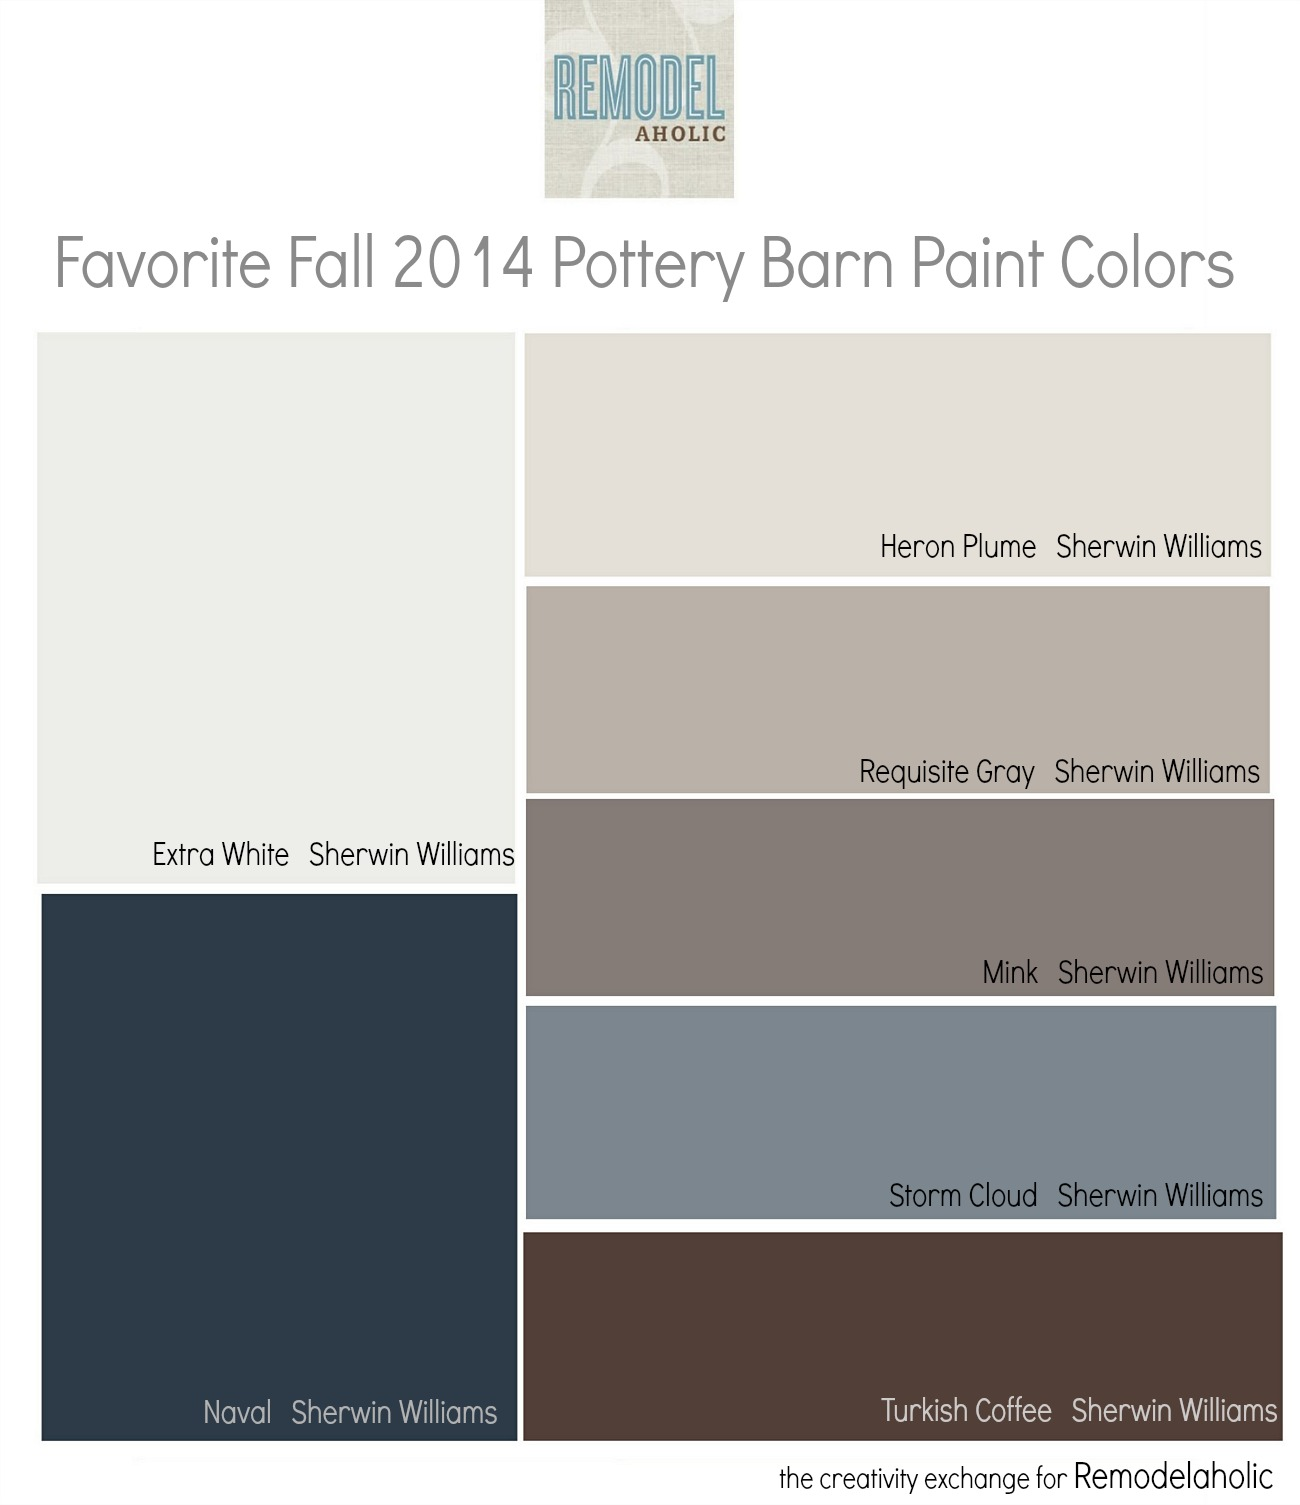 Favorites From The Fall 2014 Pottery Barn Paint Color Collection Remodelaholic